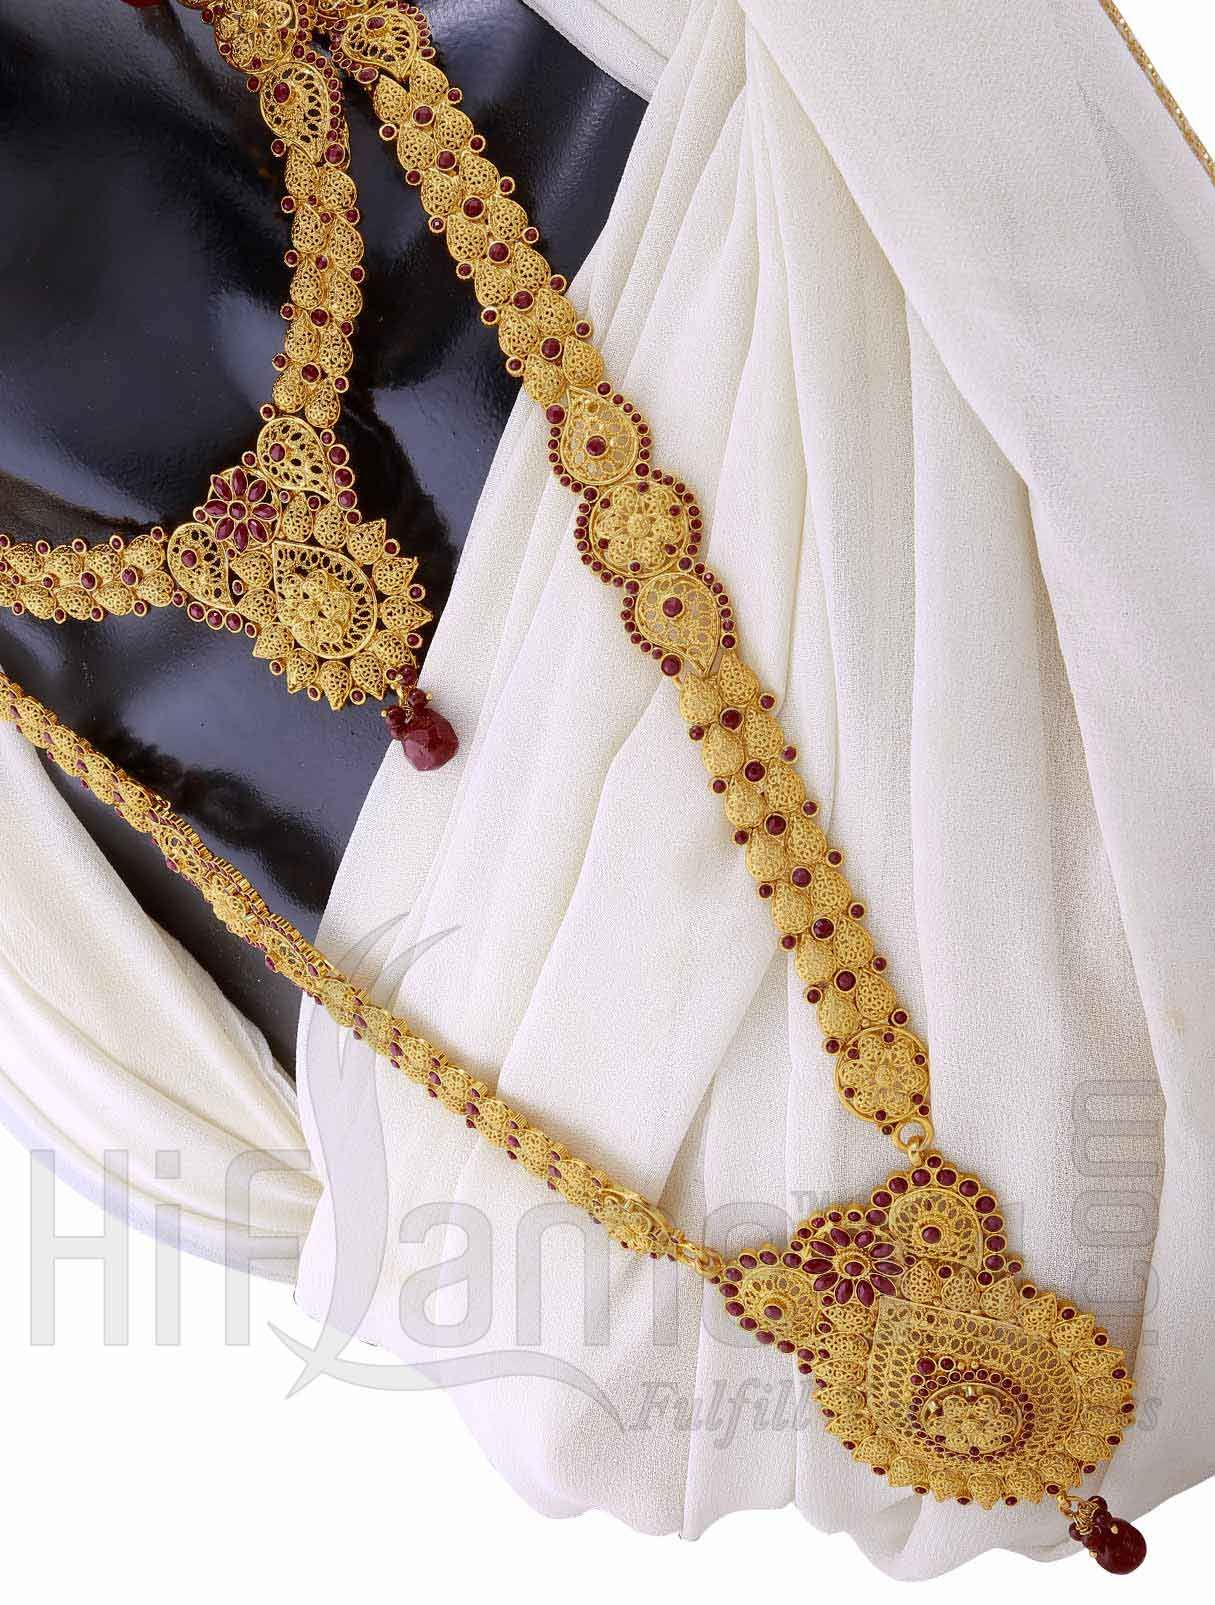 Bridal Jewellery Set with Gold and Maroon Beads